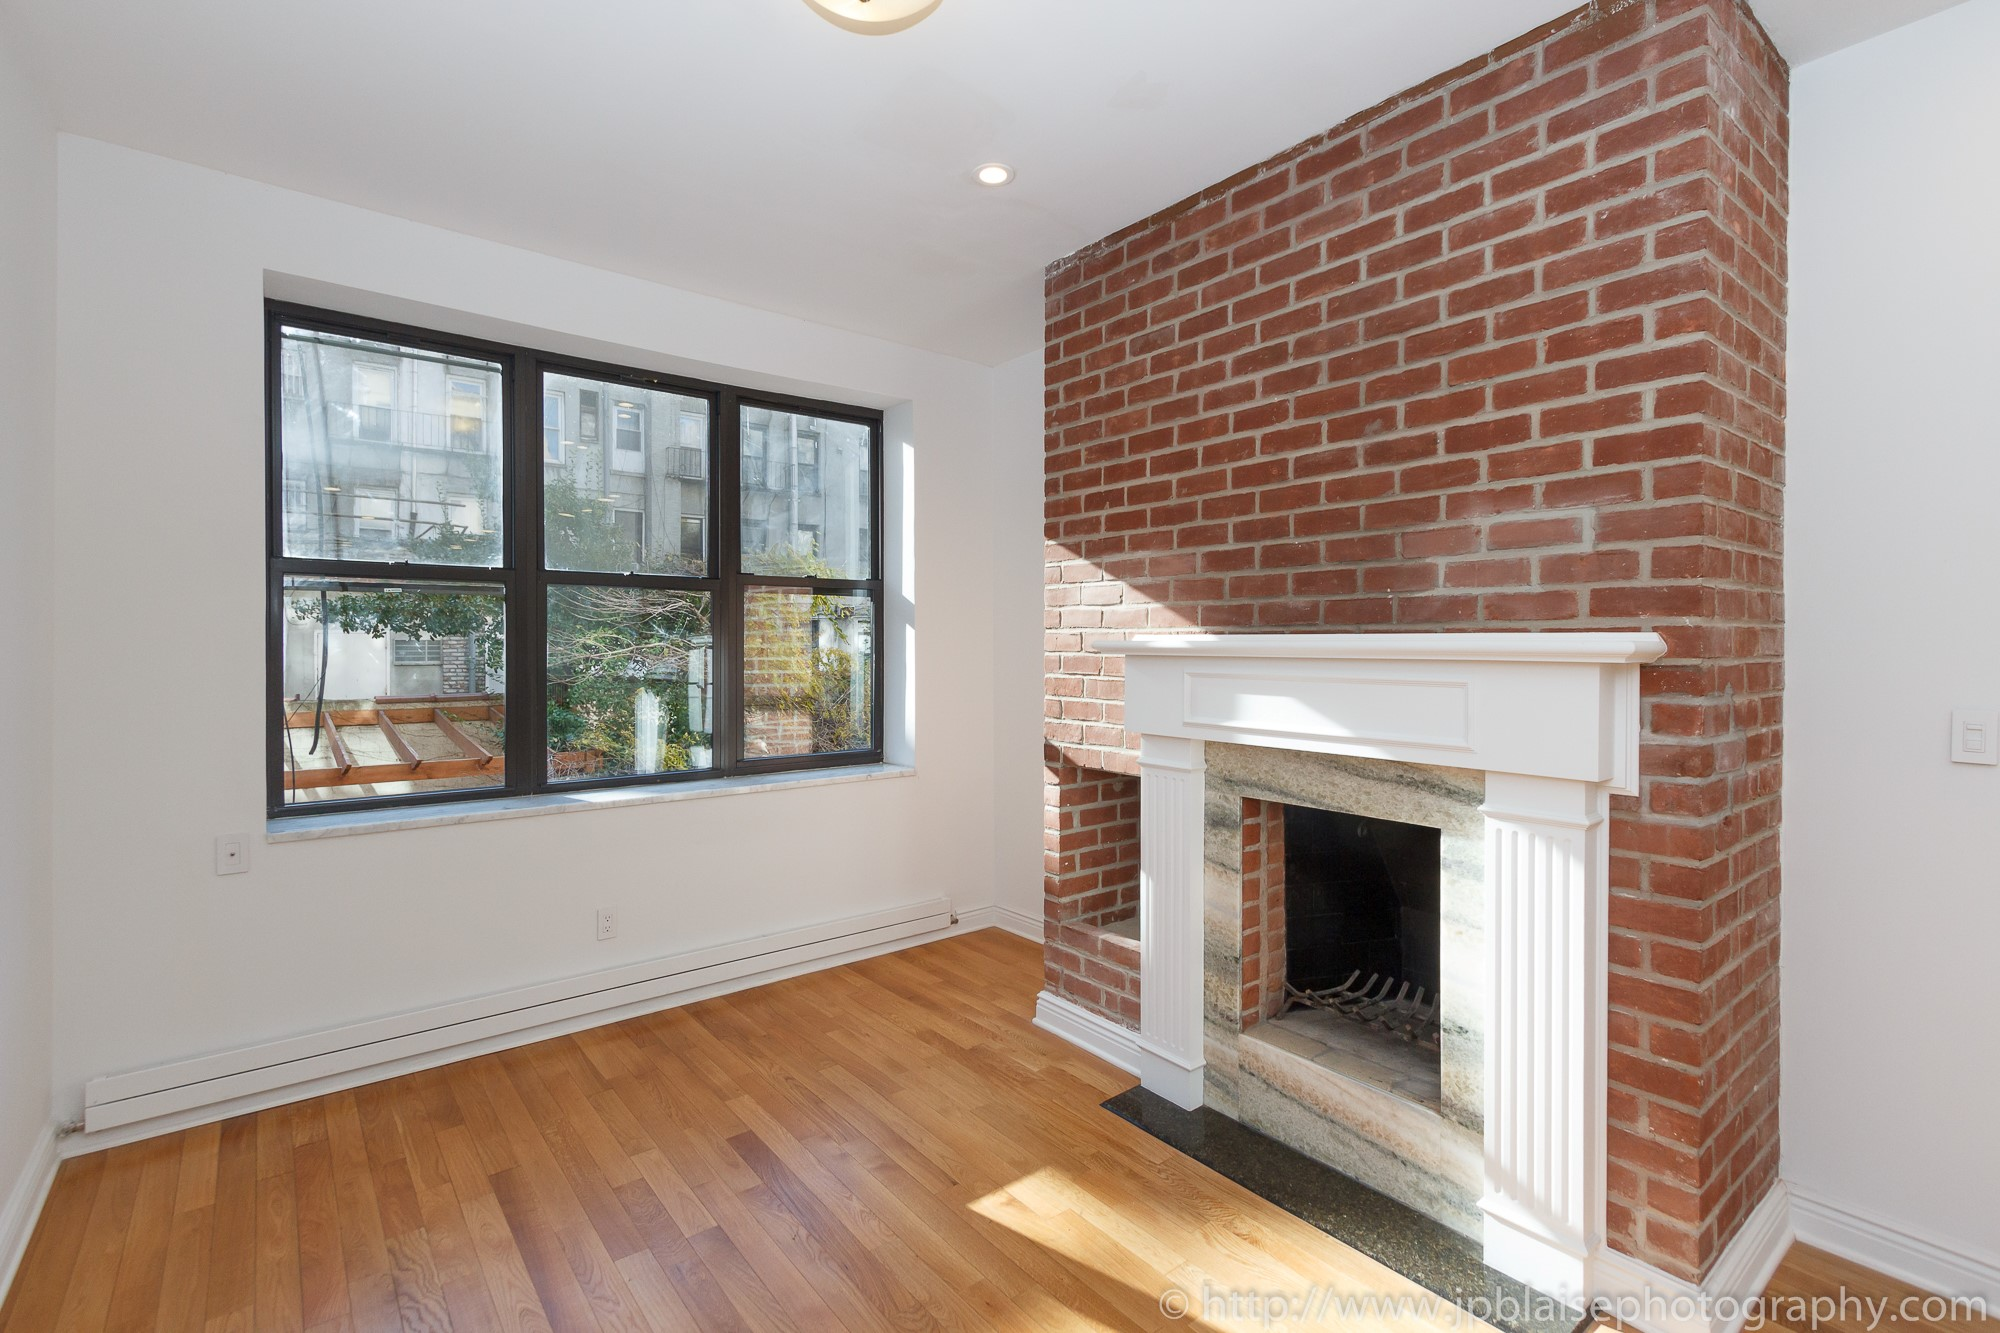 Ny apartment photographer adventures duplex one bedroom - 1 bedroom apartment upper east side ...